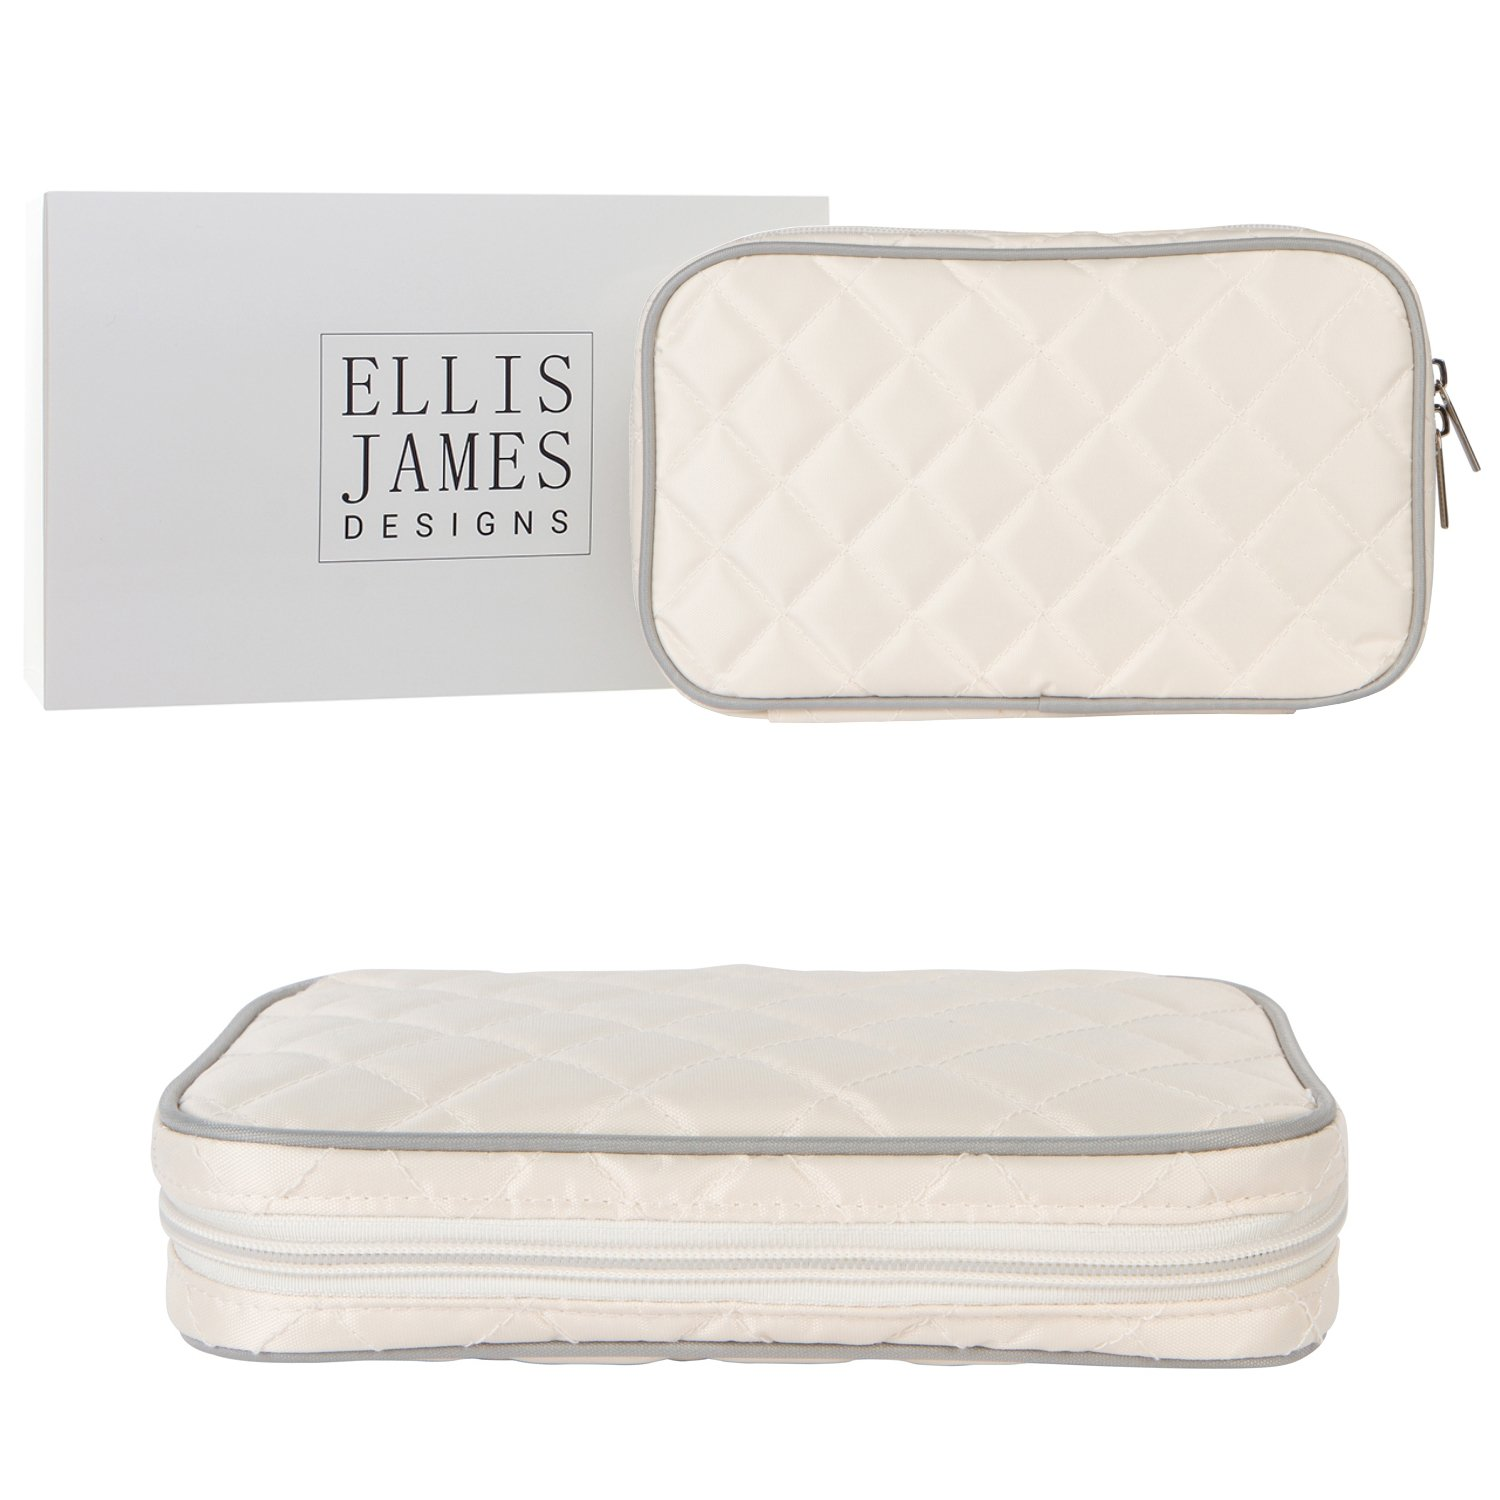 Ellis James Designs Quilted Travel Jewelry Organizer Bag Case - Black - Soft Padded Traveling Jewelry Roll Pouch with Compartments and Necklace Holder ELJ0022